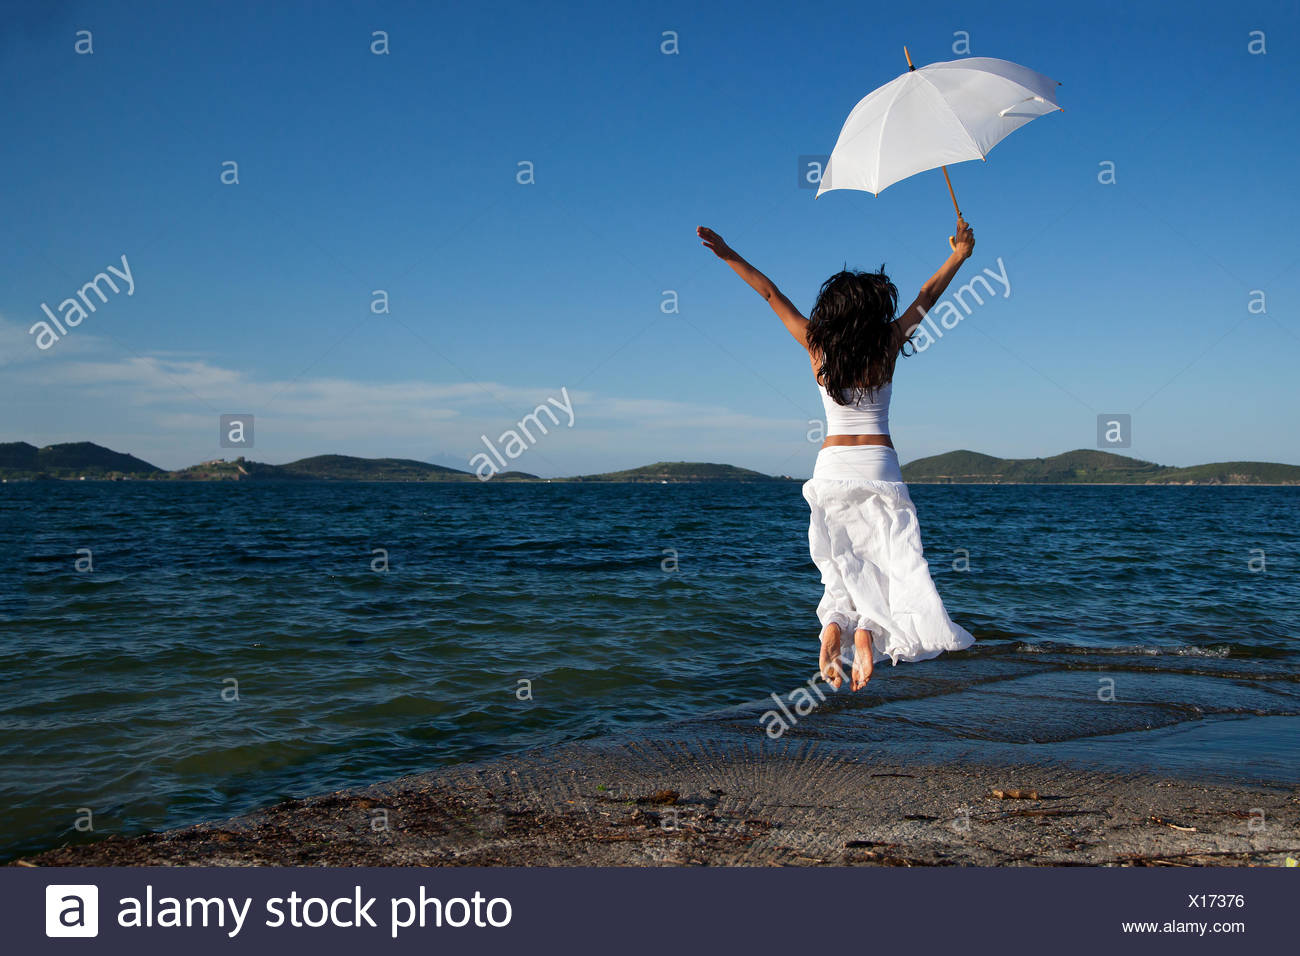 Young woman in white holding umbrella jumping on beach - Stock Image